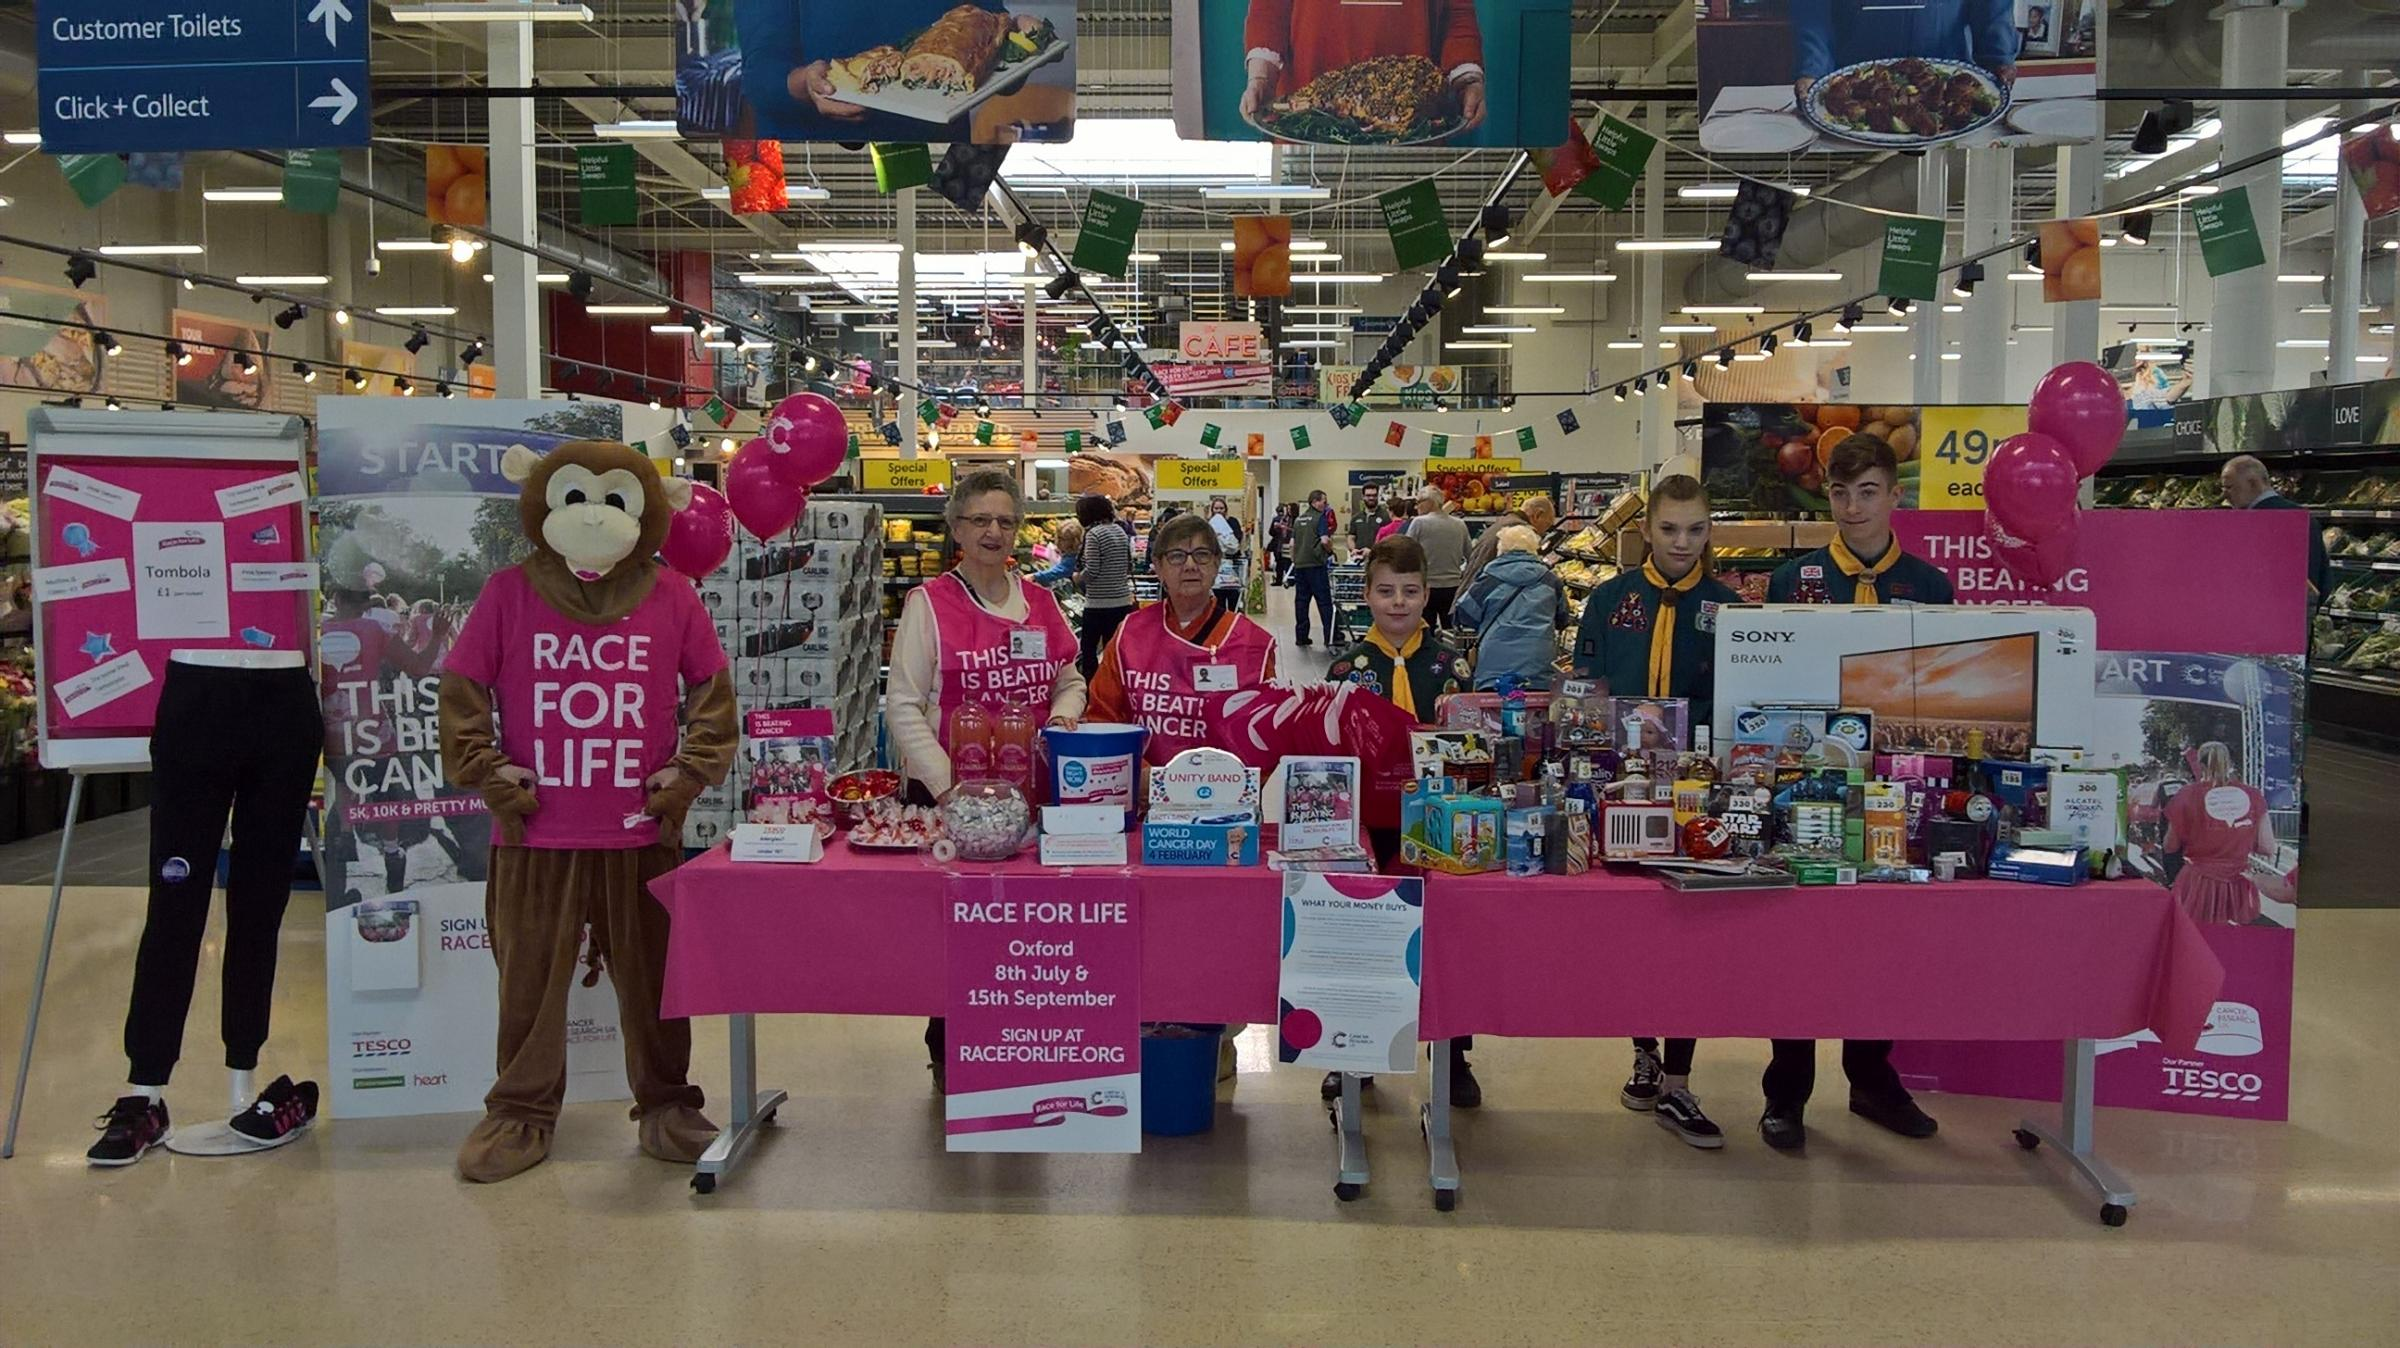 The team at Tesco Bicester turn pink in support of Race for Life 2018